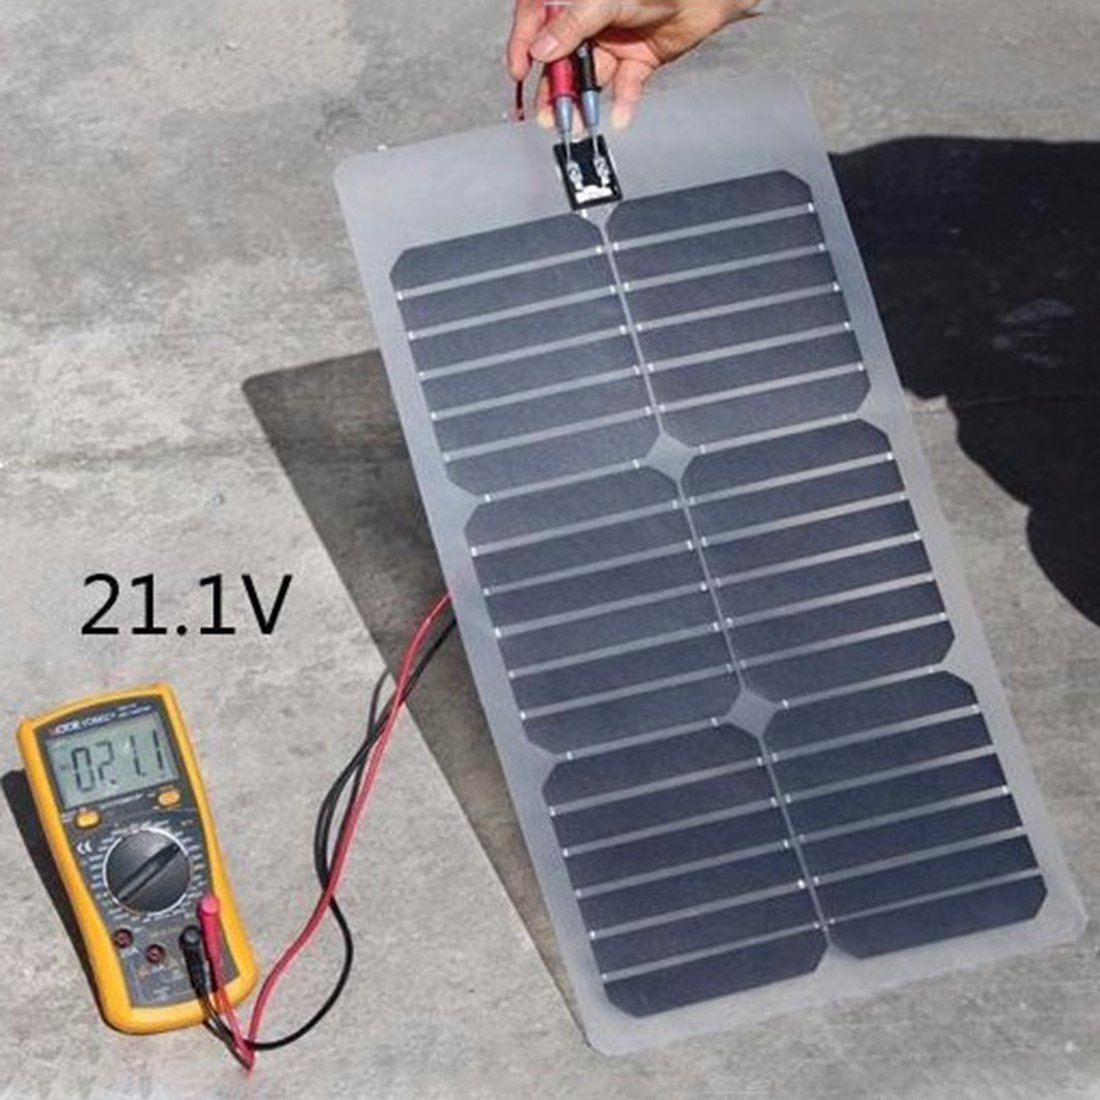 NW 1776 Flexible Solar Battery Maintainer 18V 12V 20W Solar Car Boat Power Panel Battery Charger Maintainer for Automobile Motorcycle Tractor Boat Batteries by NW 1776 (Image #8)